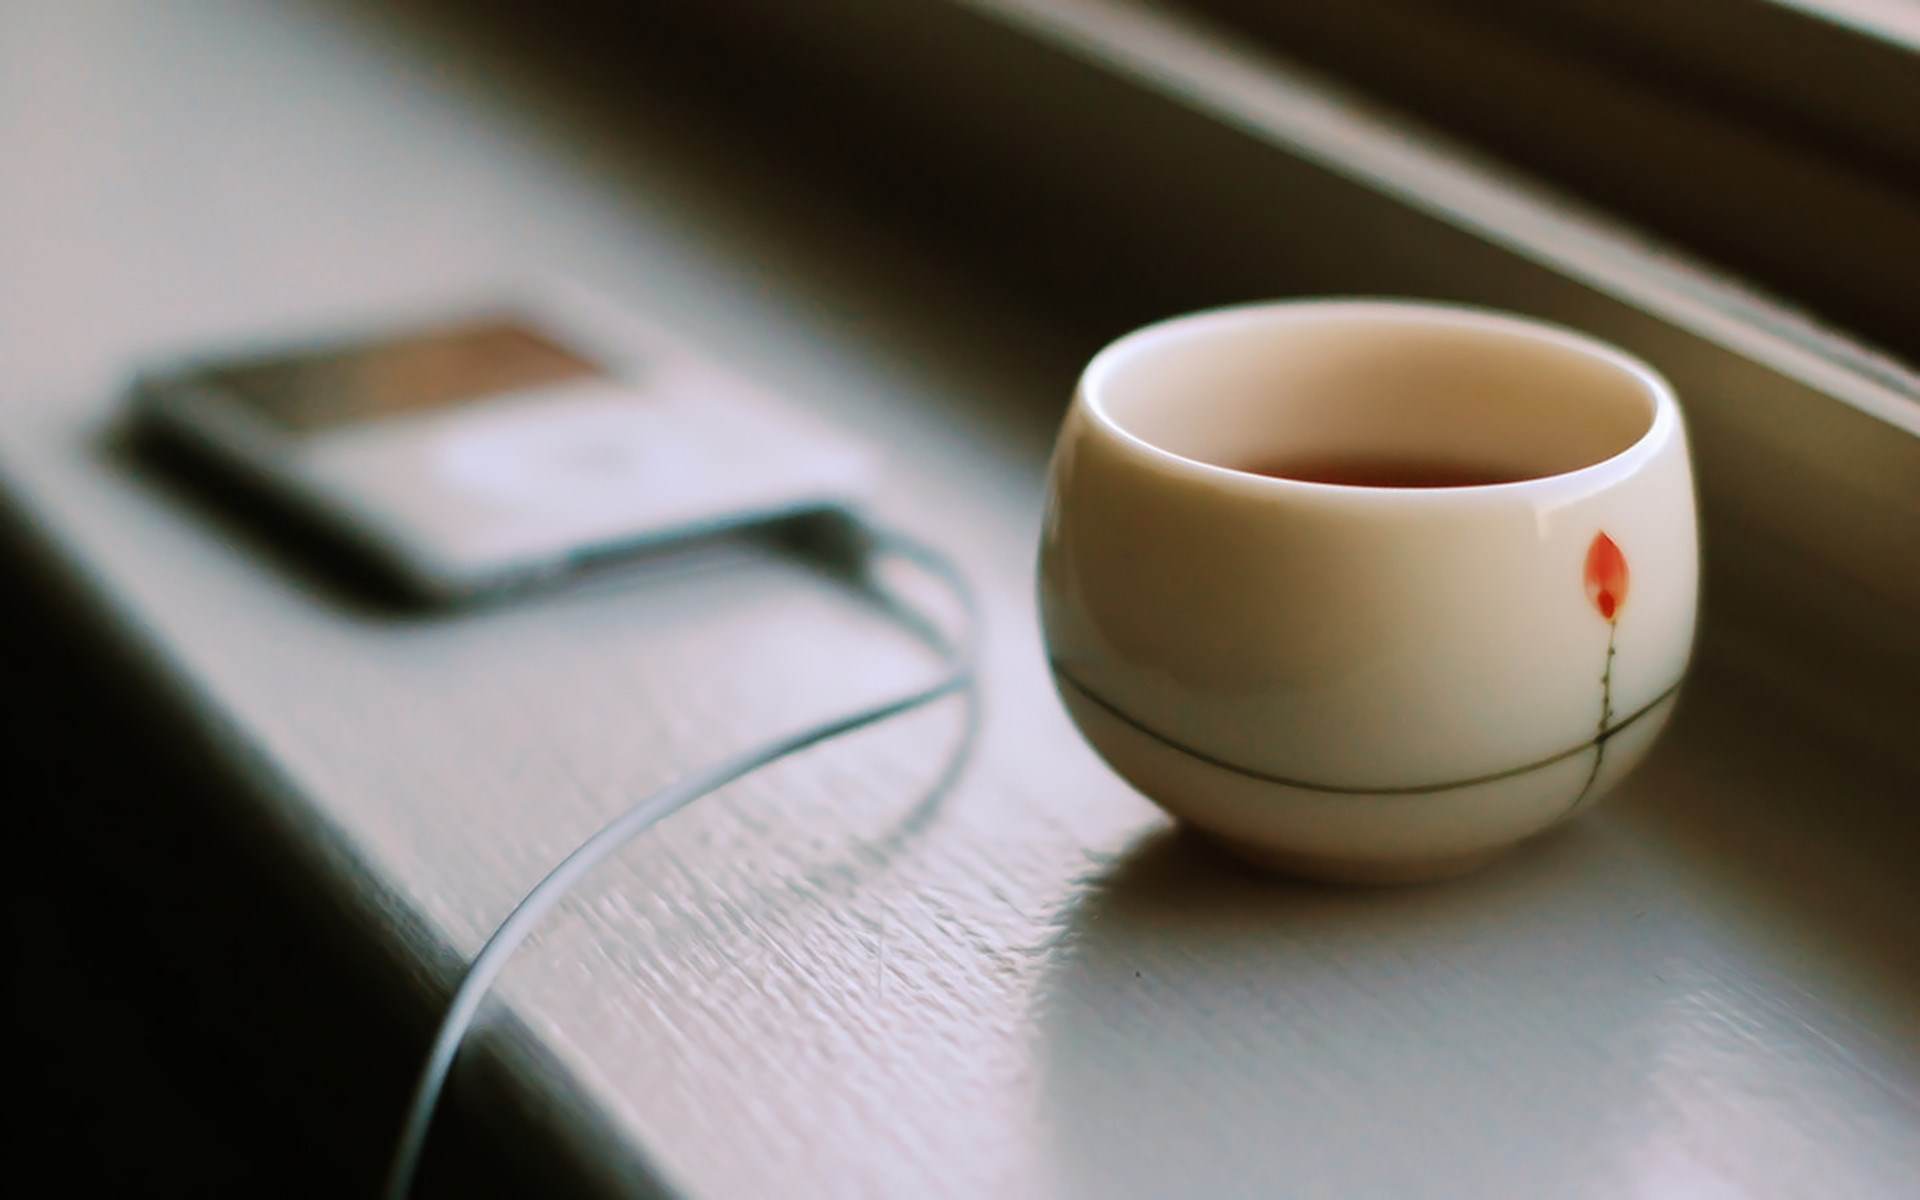 ipod-cup-tea-window-ledge-hd-wallpaper